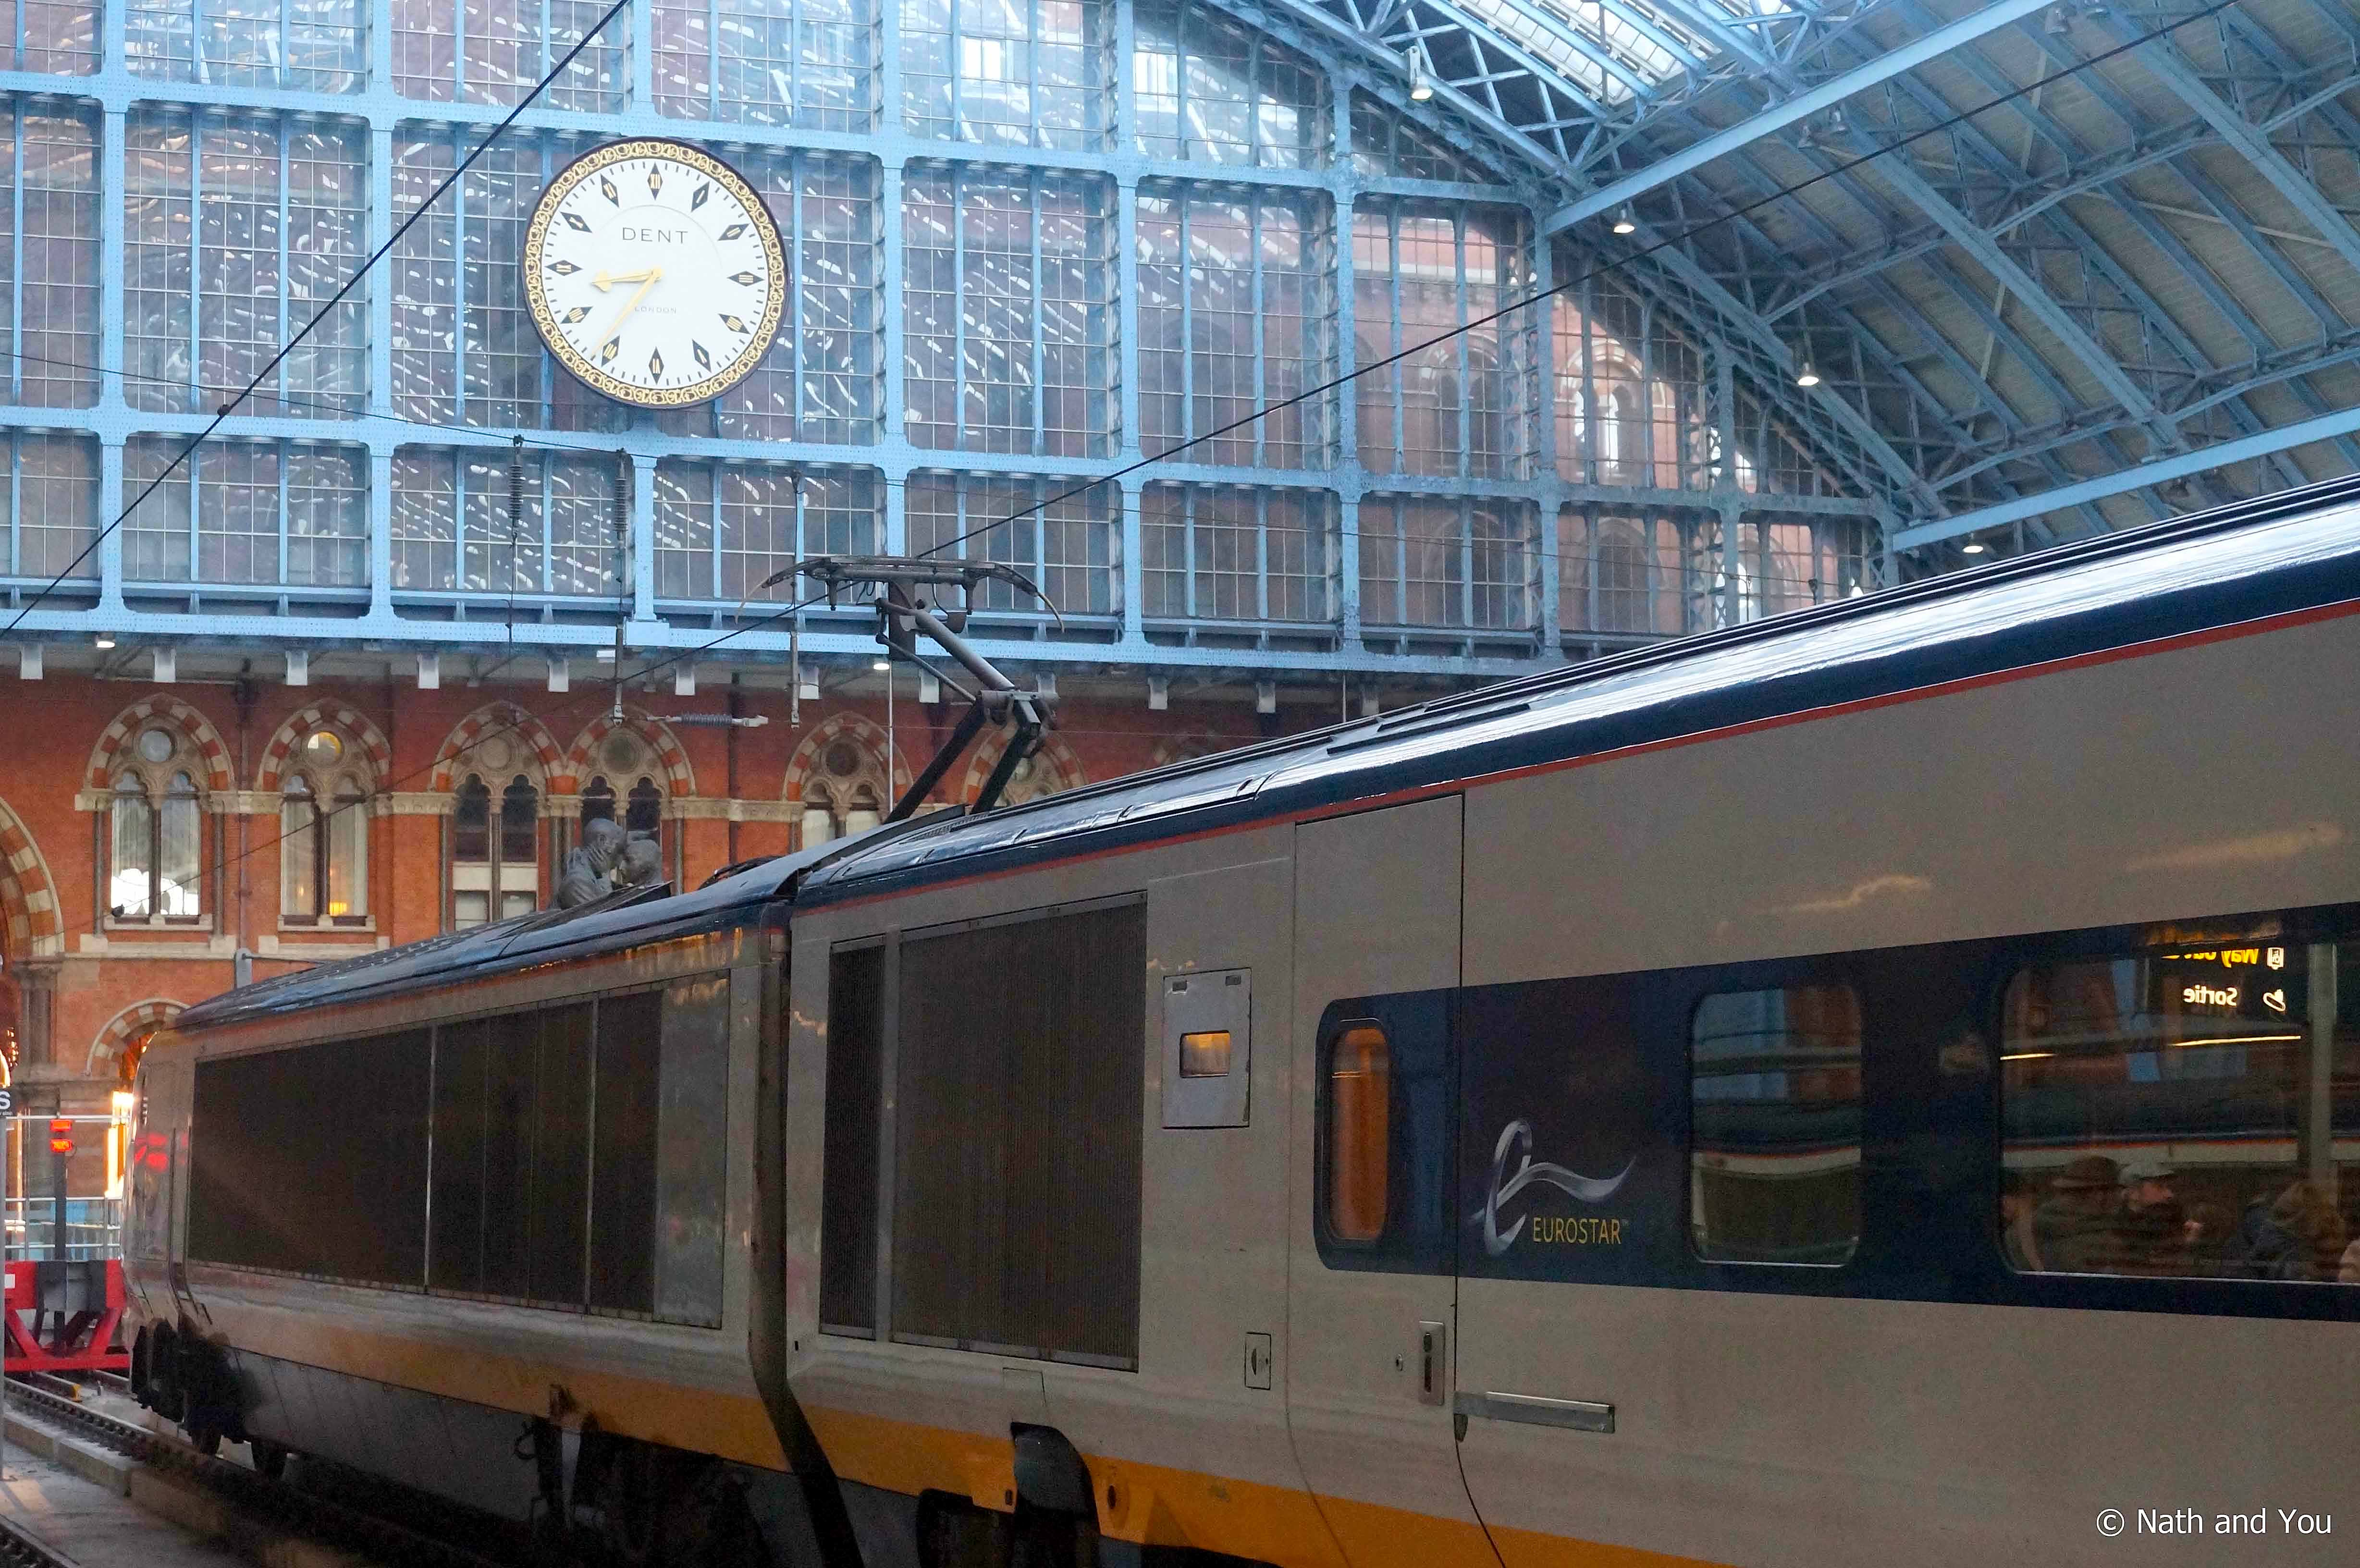 St-Pancras-Eurostar-Weekend-Londres-Nath-and-you